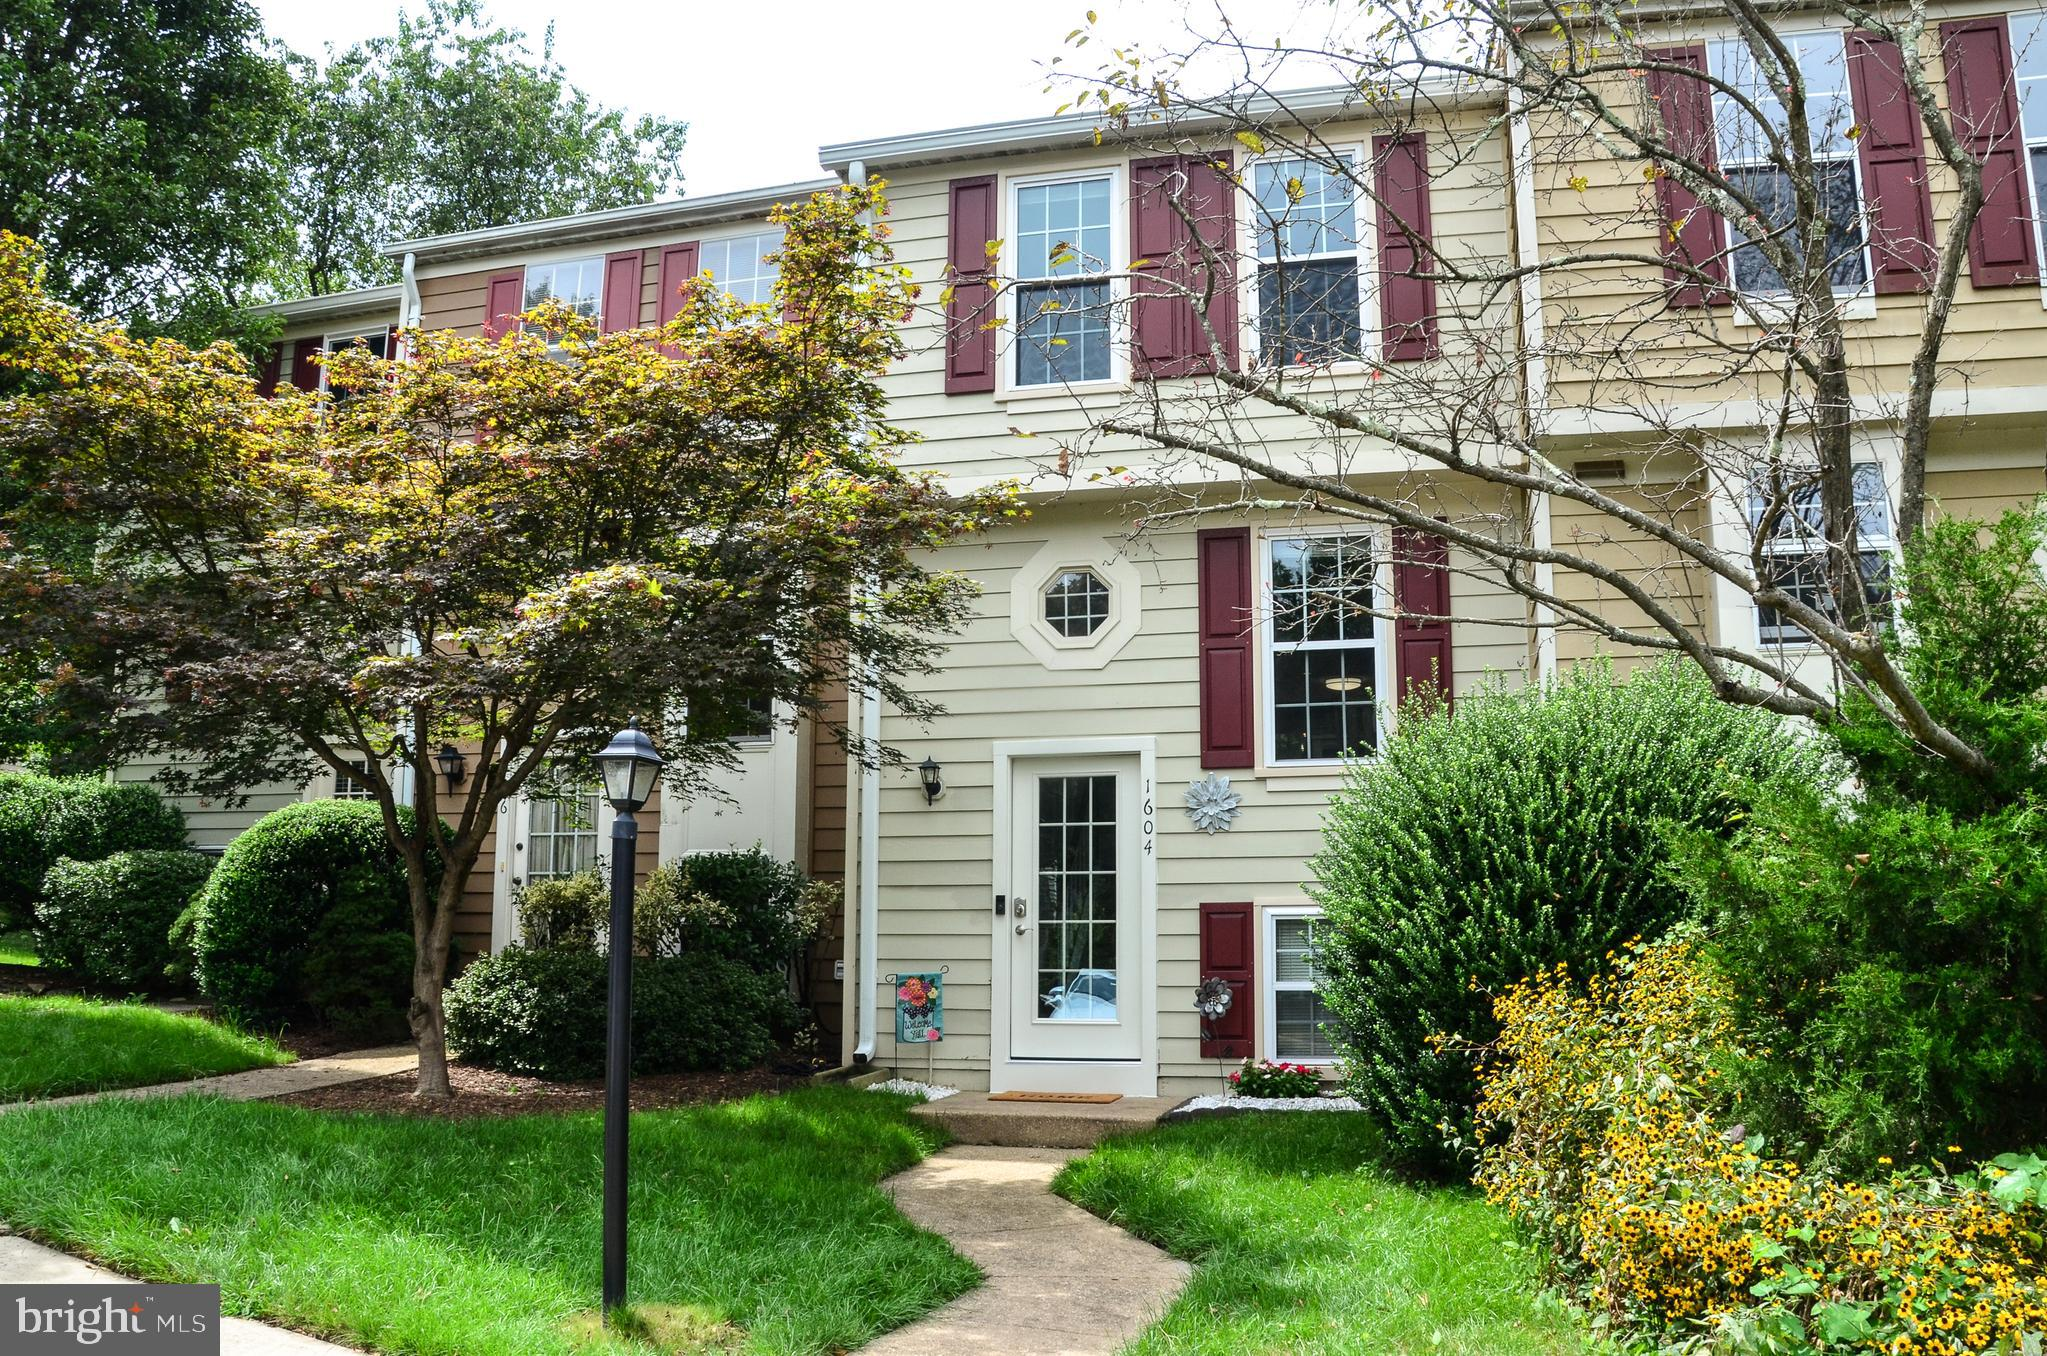 The incredible curb appeal on this immaculate townhome tells the story of what you have to look forward to upon entering the inside.  When you walk in, sunlight fills the entire home. A spacious dining room or cozy living room just steps up from the foyer.  And, directly off the gorgeous updated kitchen with granite counters is the two-level deck. This backyard gives you the privacy you are yearning for.  The decks have a view of beautiful trees and woods, providing a peaceful retreat & just steps out of your home.  This home is one of the few with both an upper deck and lower deck, giving ample space for all of your outdoor enjoyment and entertaining. Fun outdoor lighting is wired from inside of the house, adding to the night time ambiance. Back indoors, the bright walk-out basement with a brand new full bathroom could be an in-law retreat, a spacious dedicated home office, or a place to cozy up and watch your favorite tv shows or movies.  The upper level is the perfect place to retreat for the night. It offers two light-filled bedrooms - one master and one guest room, along with ample closet space and a beautiful new bathroom.  Tons of closets throughout this home and a utility room for even more storage.  This charming townhouse really has it all, and is so close to all that Reston has to offer! Being a resident of Reston allows you access to 15 pools,  miles of paved trails, 52 tennis courts, farmers' markets, garden plots, parks, recreation activities, classes, camps, and events.  Walk to the Reston Town Center for shopping and dinner, or Trader Joe's and North Point Shopping Center to do your grocery shopping.  And, the historic Lake Anne Plaza is right down the street.  A new roof,  3-year-old windows, beautiful hand-scraped hardwood flooring on main level and laminate wood flooring on the lower level, a gorgeous kitchen with granite counters & backsplash, and exciting new baths, a new washer & dryer, are just some of the details that you will find in this tr